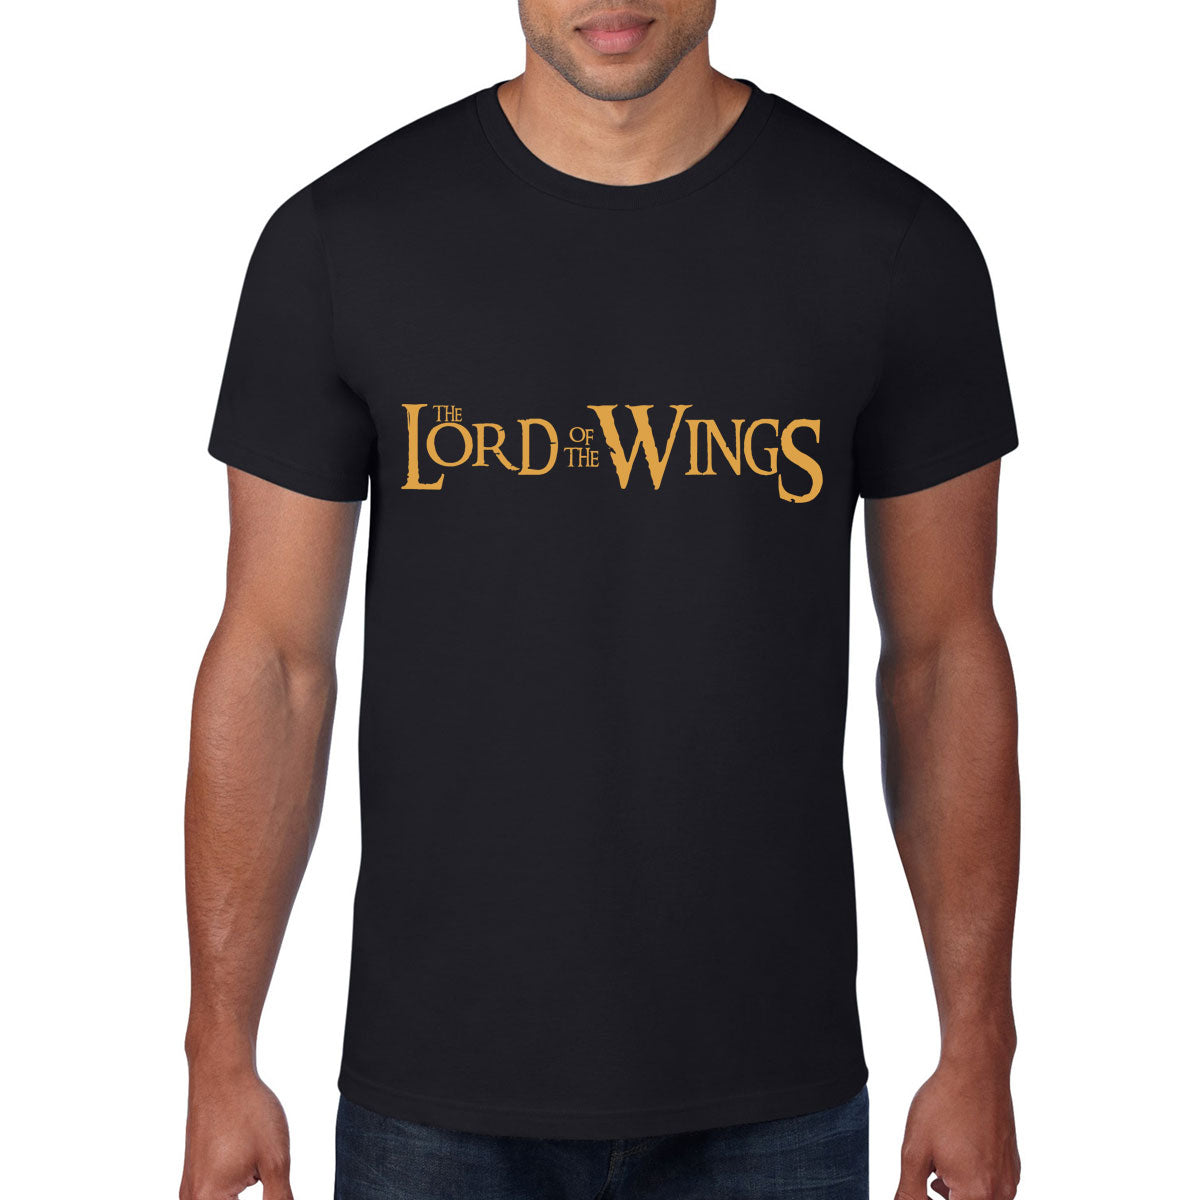 Lord Of The Wings Rugby Tee - First XV rugbystuff.com